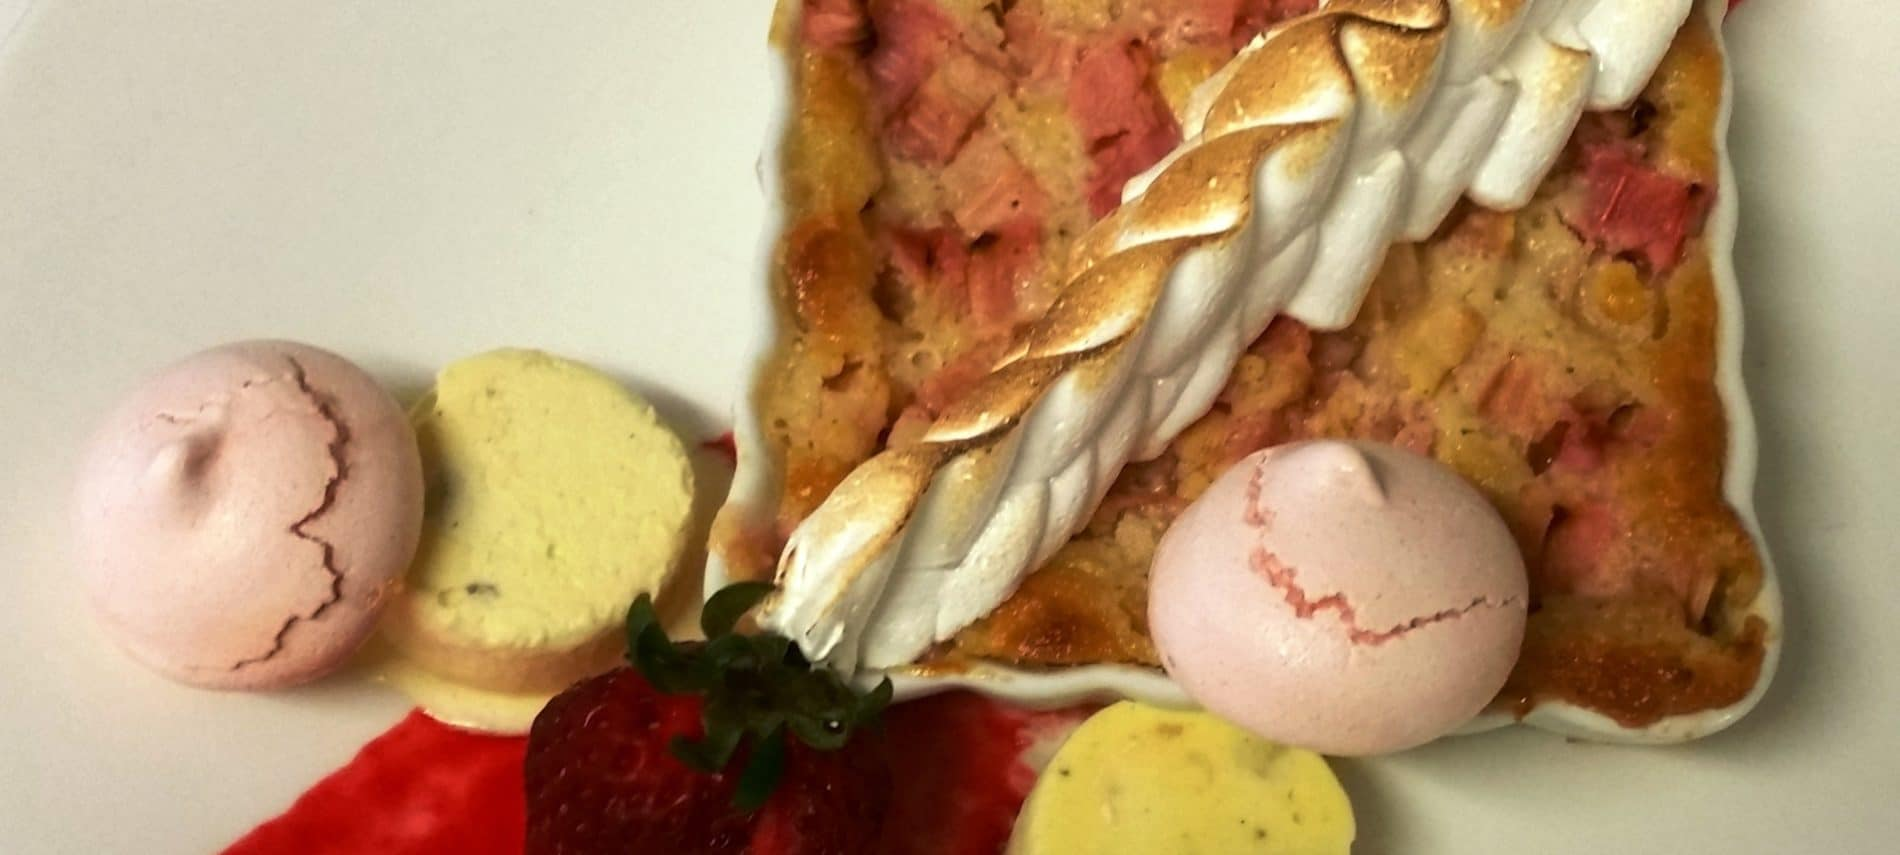 Rhubarb custard dessert served with saffron-cardamom-pistachio kulfi , rose meringue , and raspberry coulis